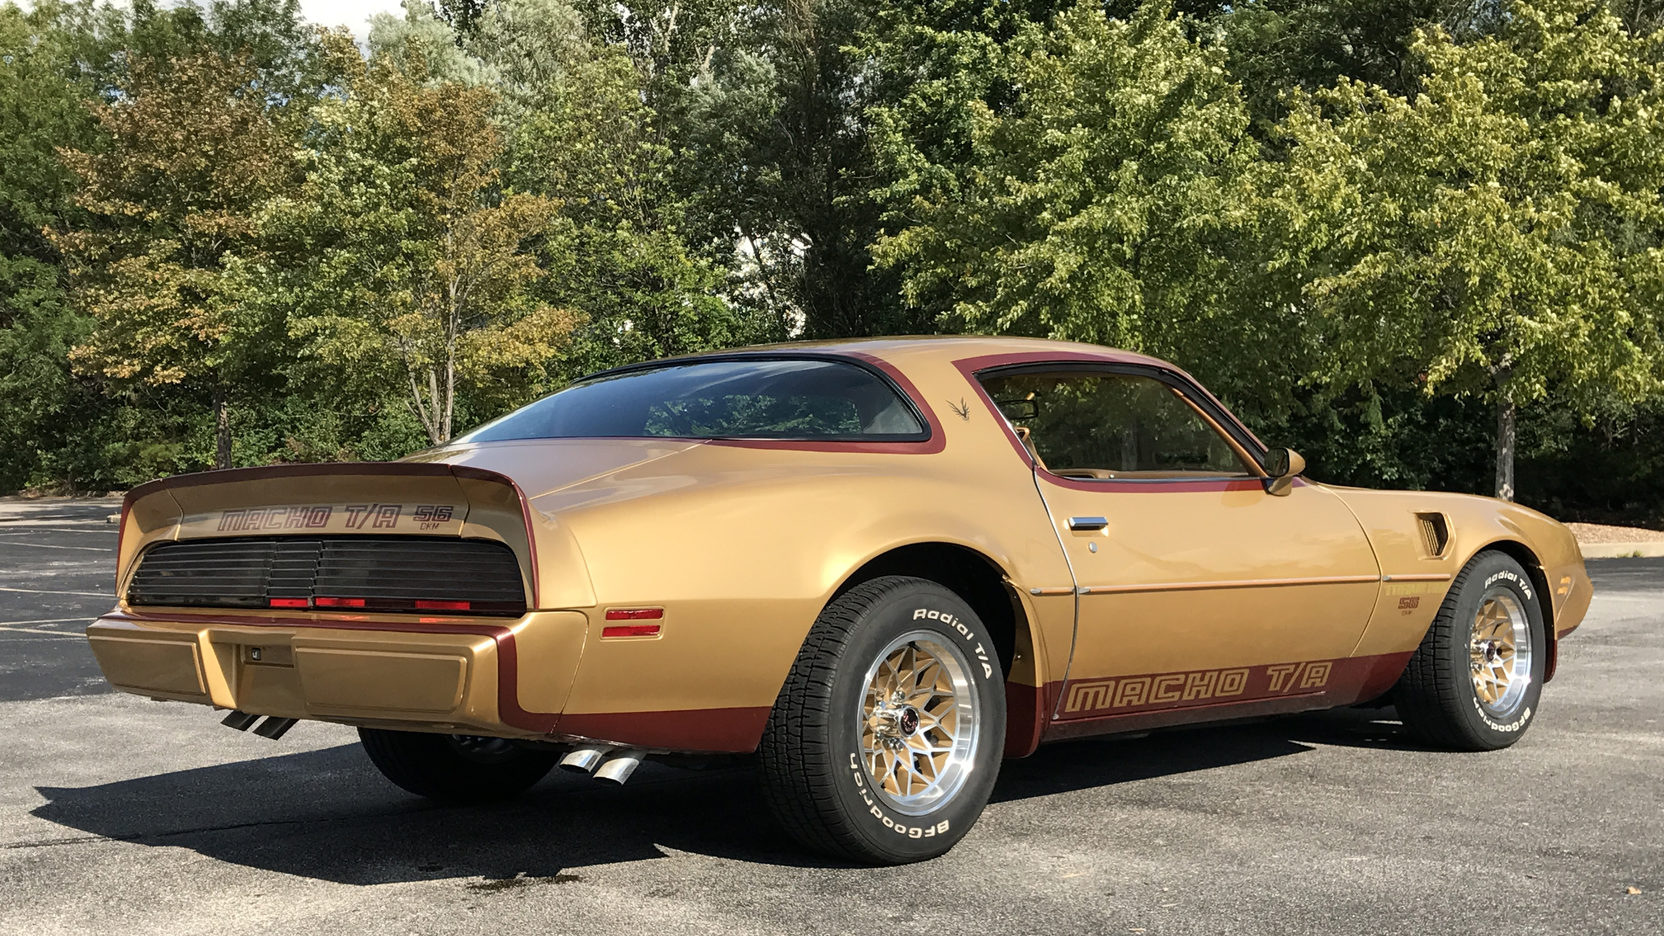 1979 Pontiac Macho Trans Am rear 3/4